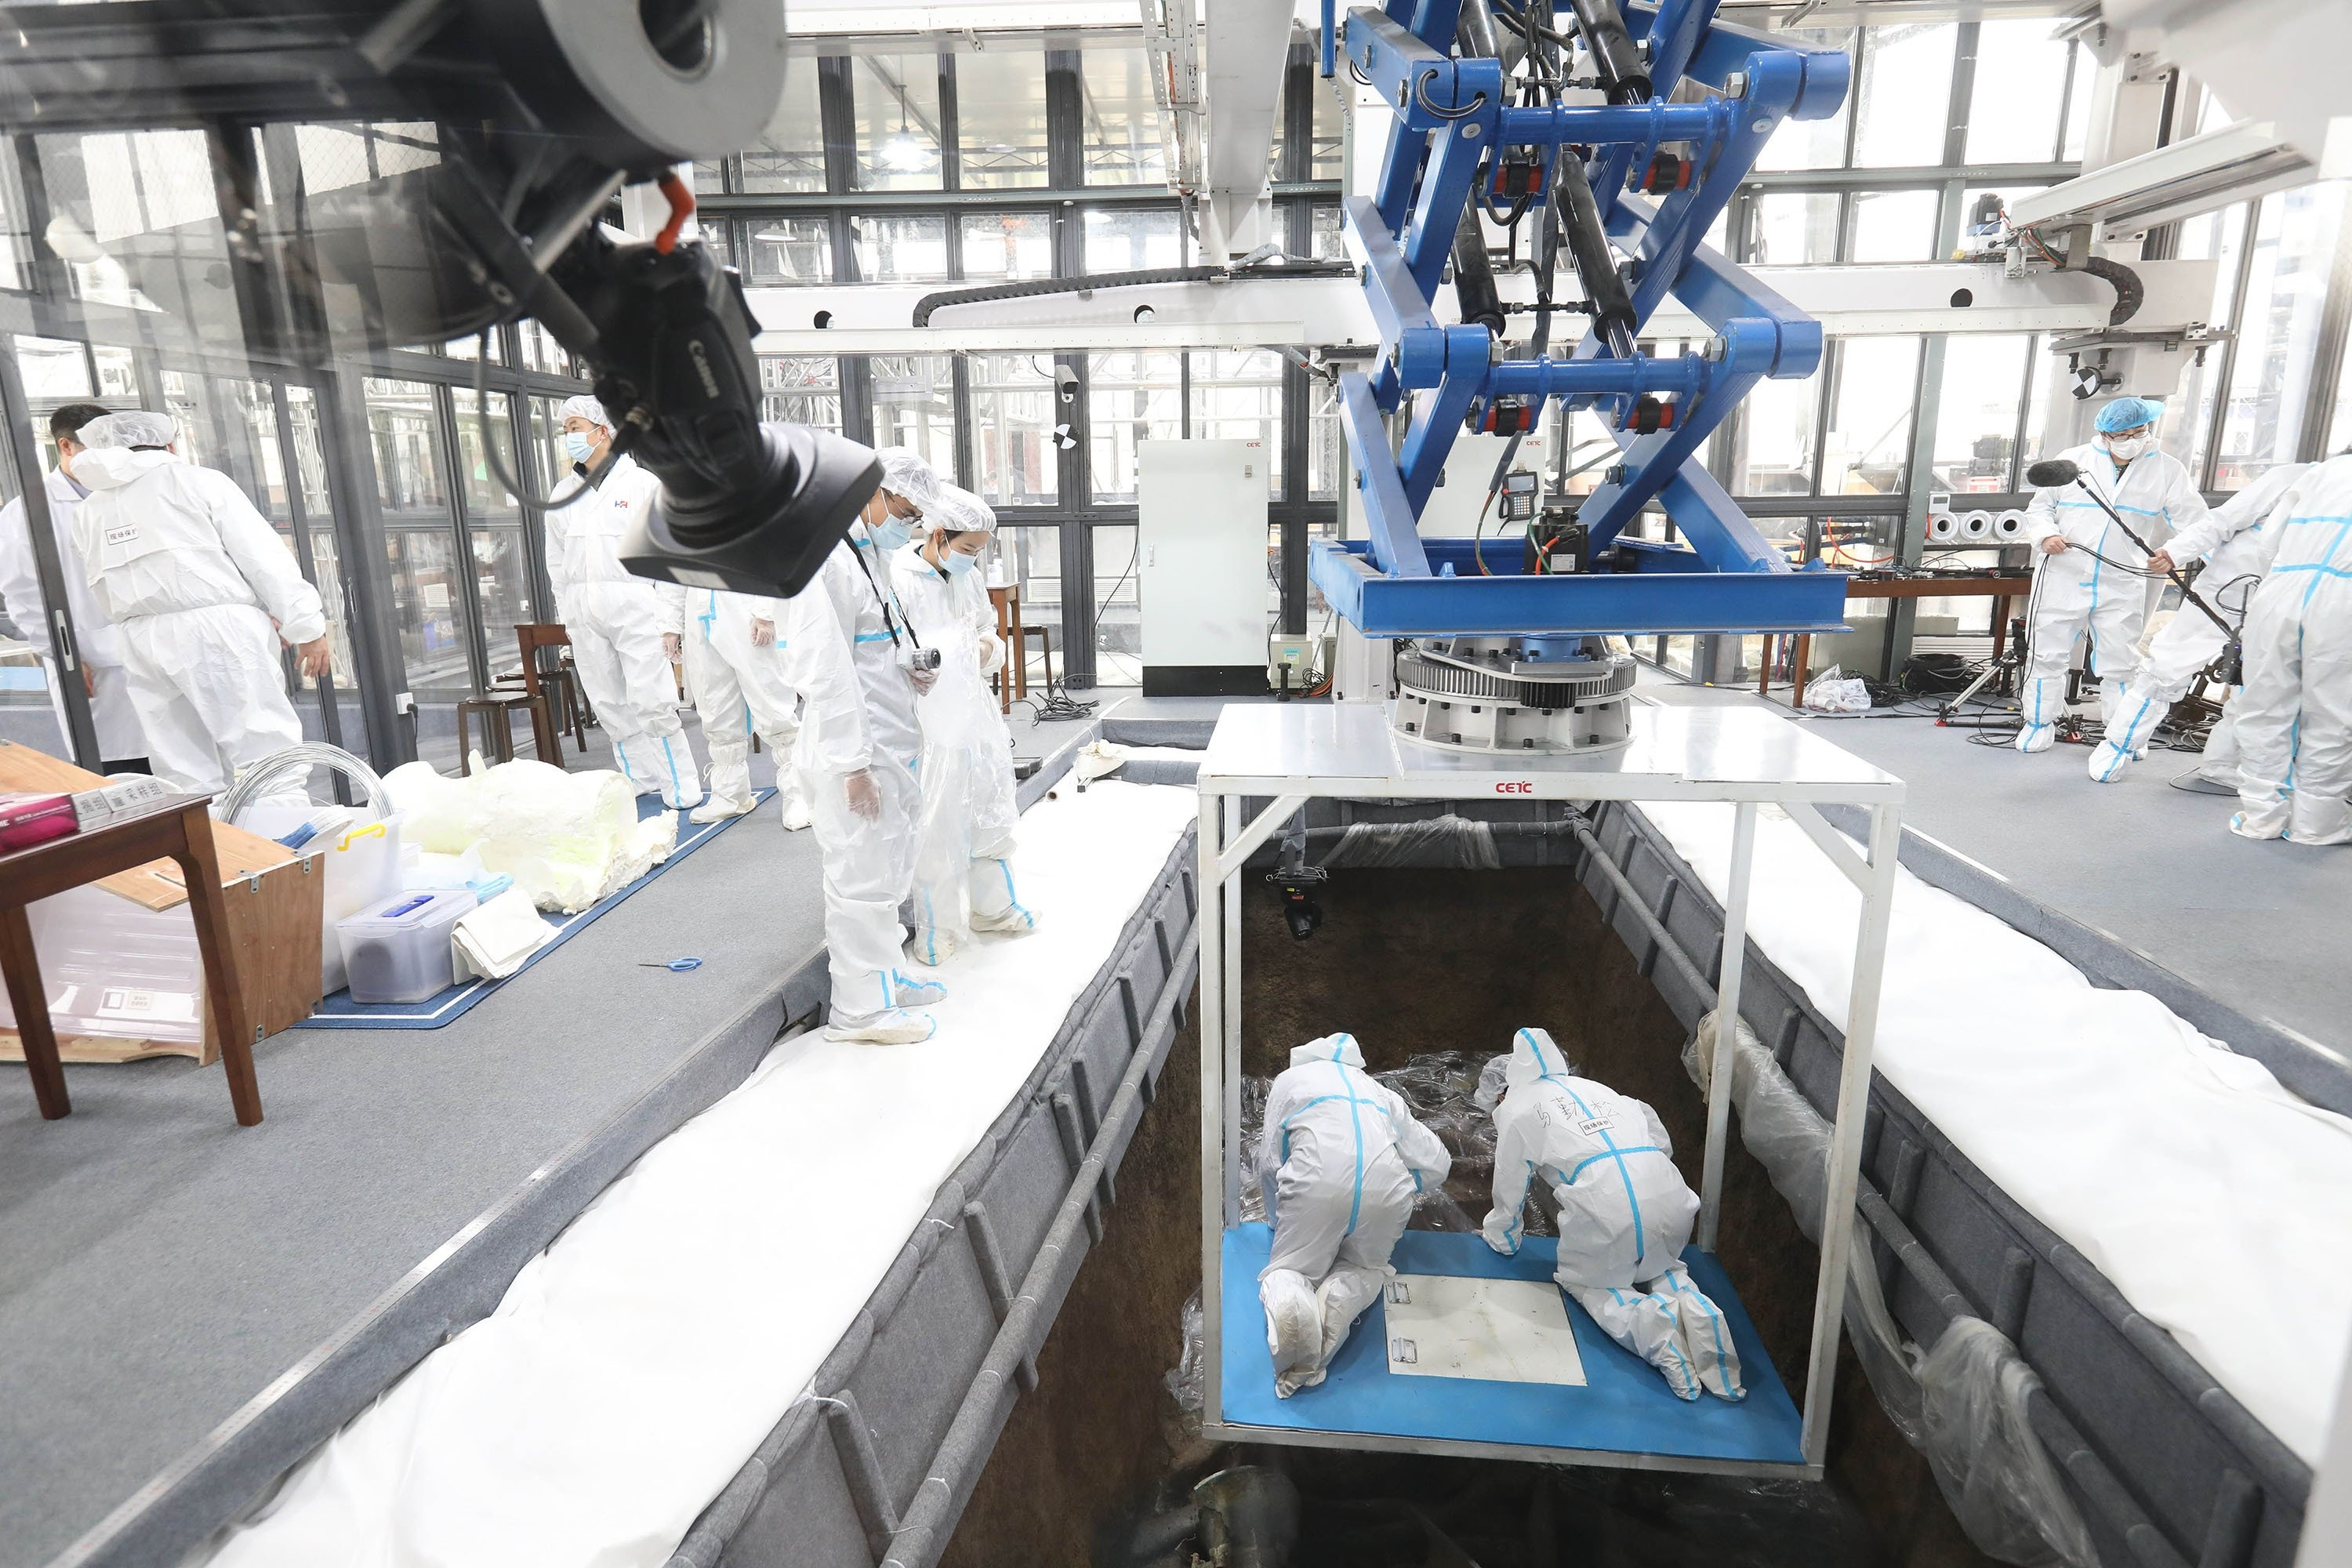 Archaeologists work at the No. 3 sacrificial pit of the Sanxingdui Ruins site in Deyang, Sichuan province, China, March 20, 2021. (Getty Images)